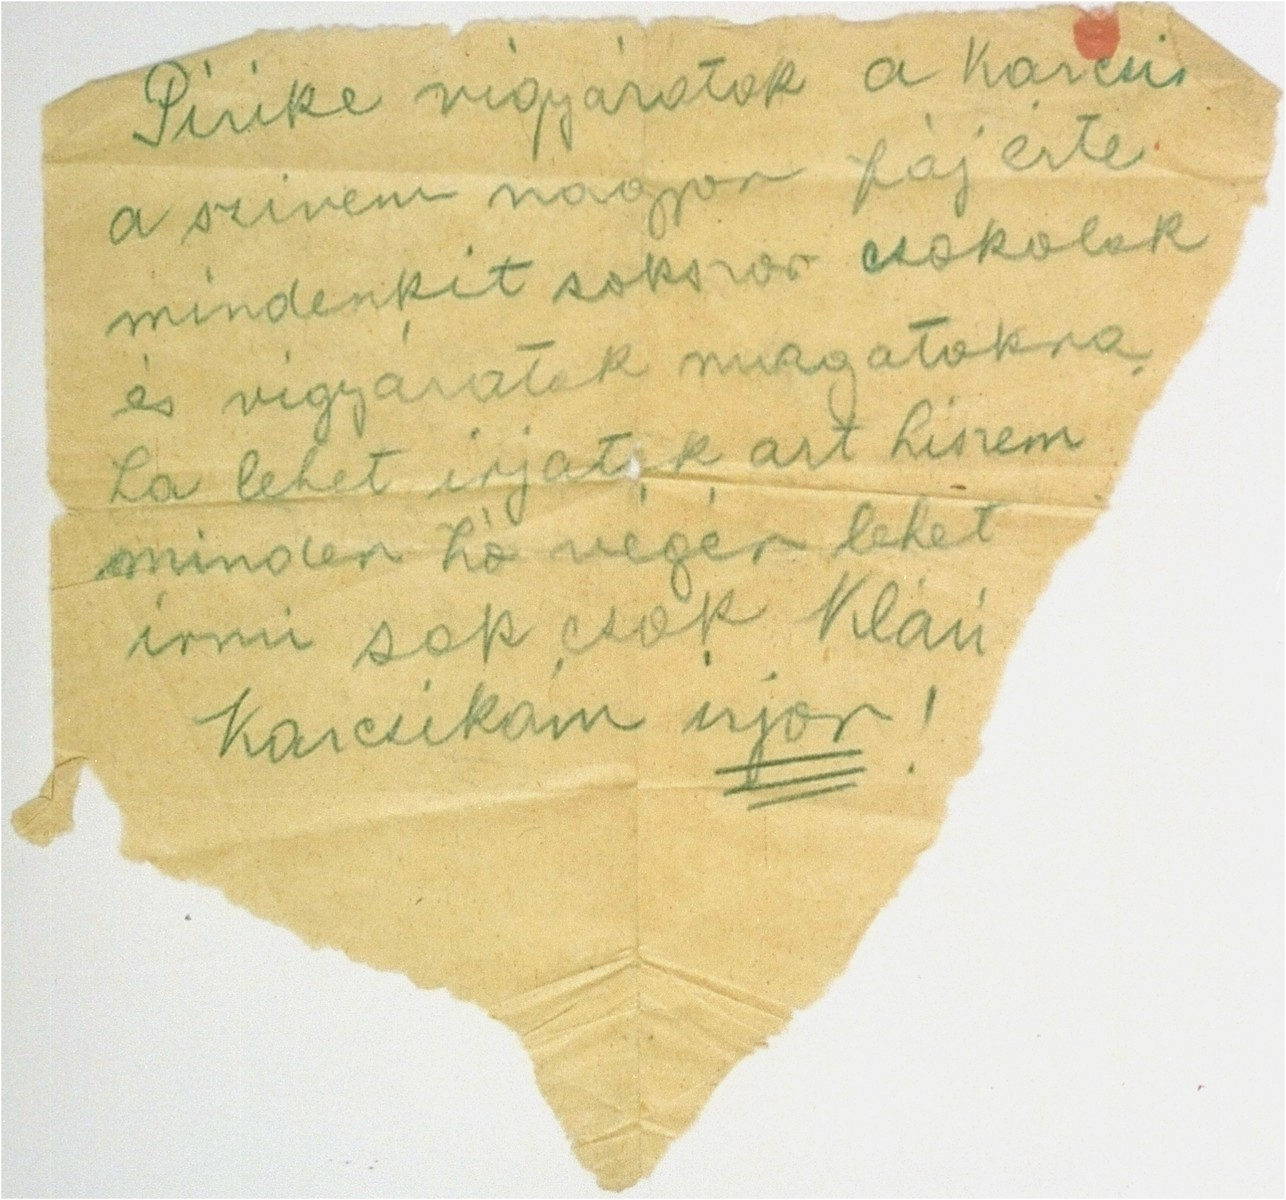 """A letter written by Klari Perl Barber, a prisoner in the Kistarcsa transit camp, to her sister, Piroska, in Budapest.  In the letter Klari asks her sister to take good care of her son, Karoly, and to have him write to her.  [Translation from Hungarian]:  """"Little Piri [Piroska], take good care of Karcsi [Karoly].  My heart is aching for him.  Kisses to all, and take good care of yourselves.  Write if it's at all possible.  I believe it's permitted to write at the end of every month.  Many kisses, Klari.  My little Karcsi, write!"""""""